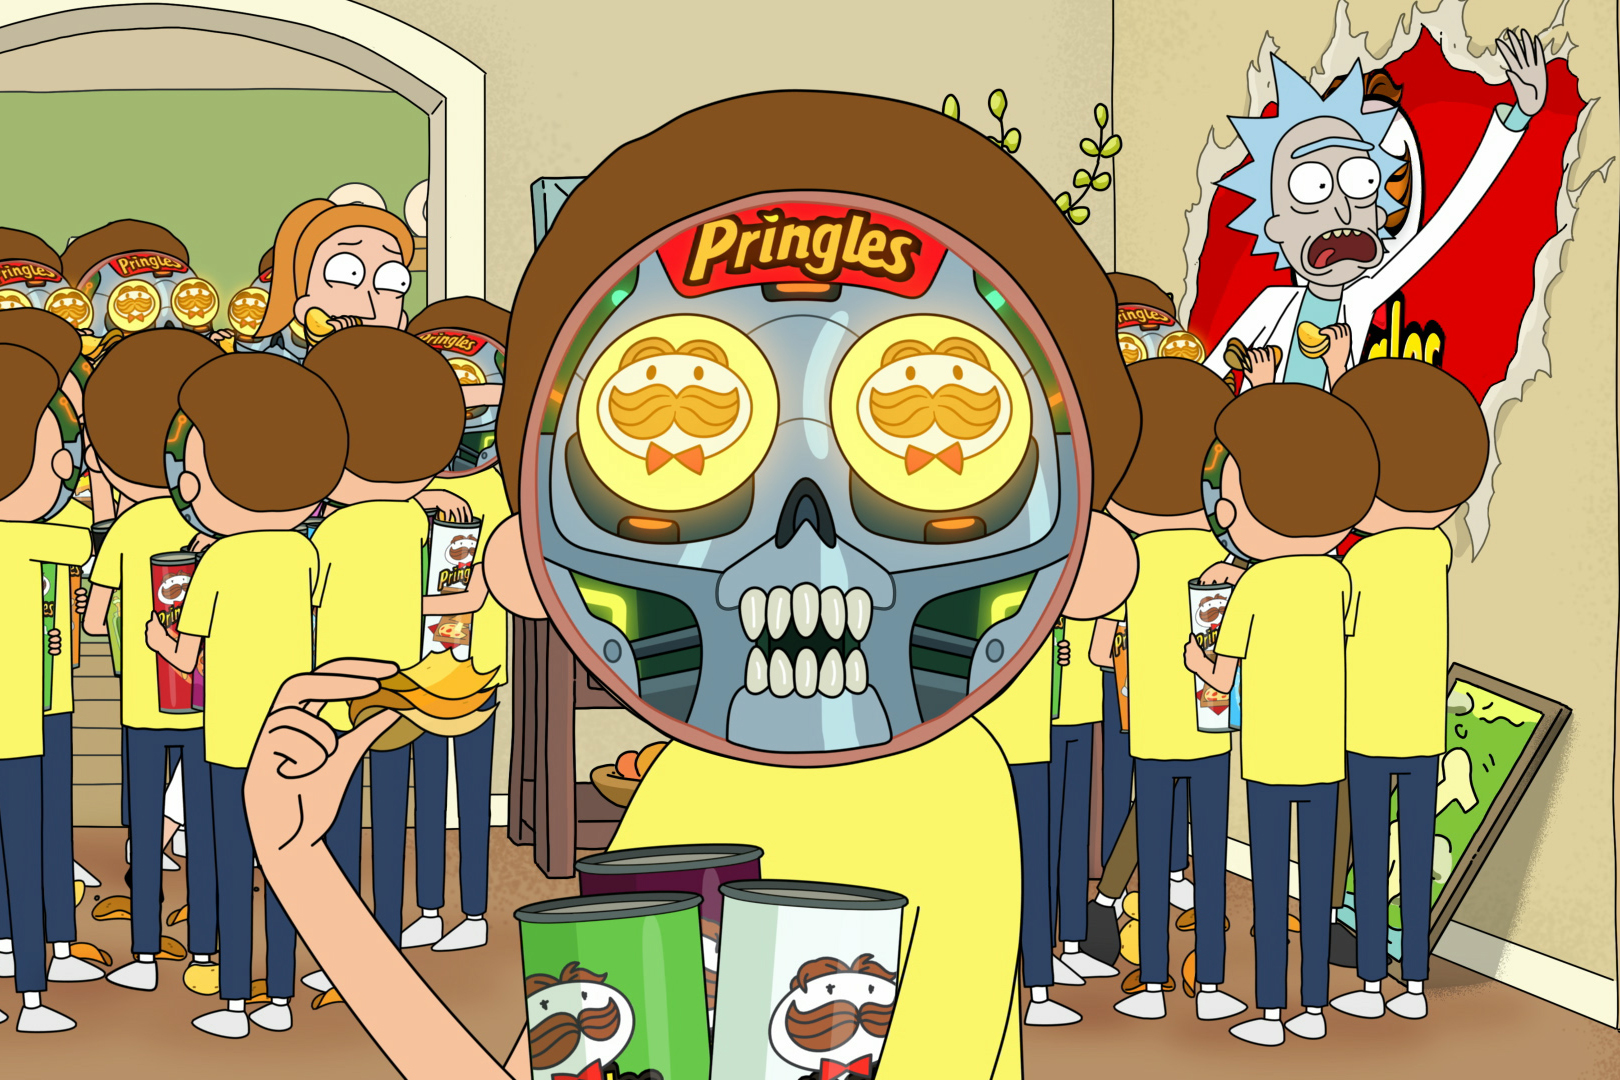 Rick and Morty bring fresh energy to flavor-stacking in Pringles' Super Bowl spot